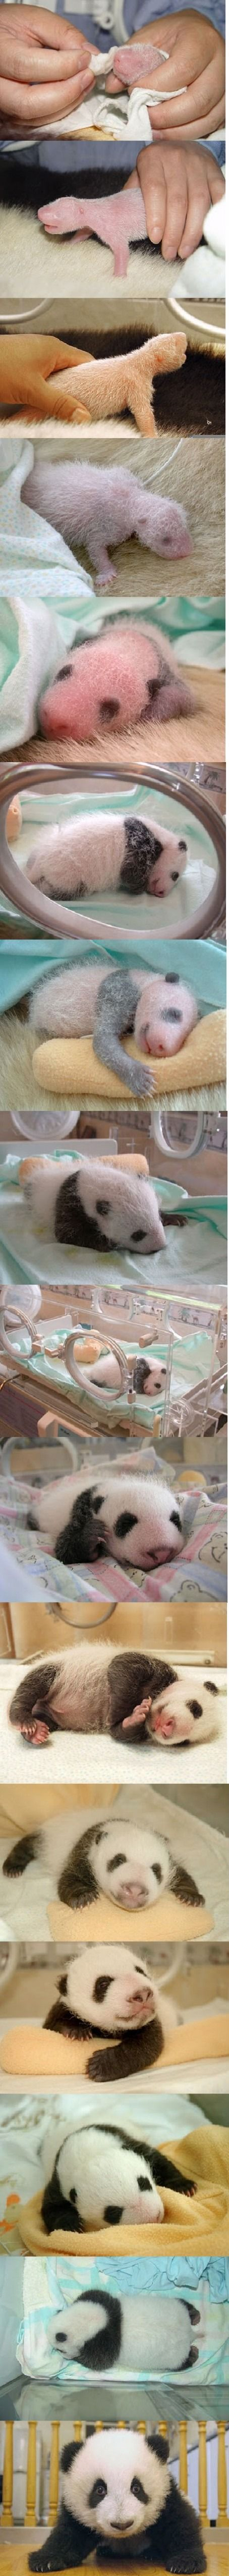 see baby panda grow step by step